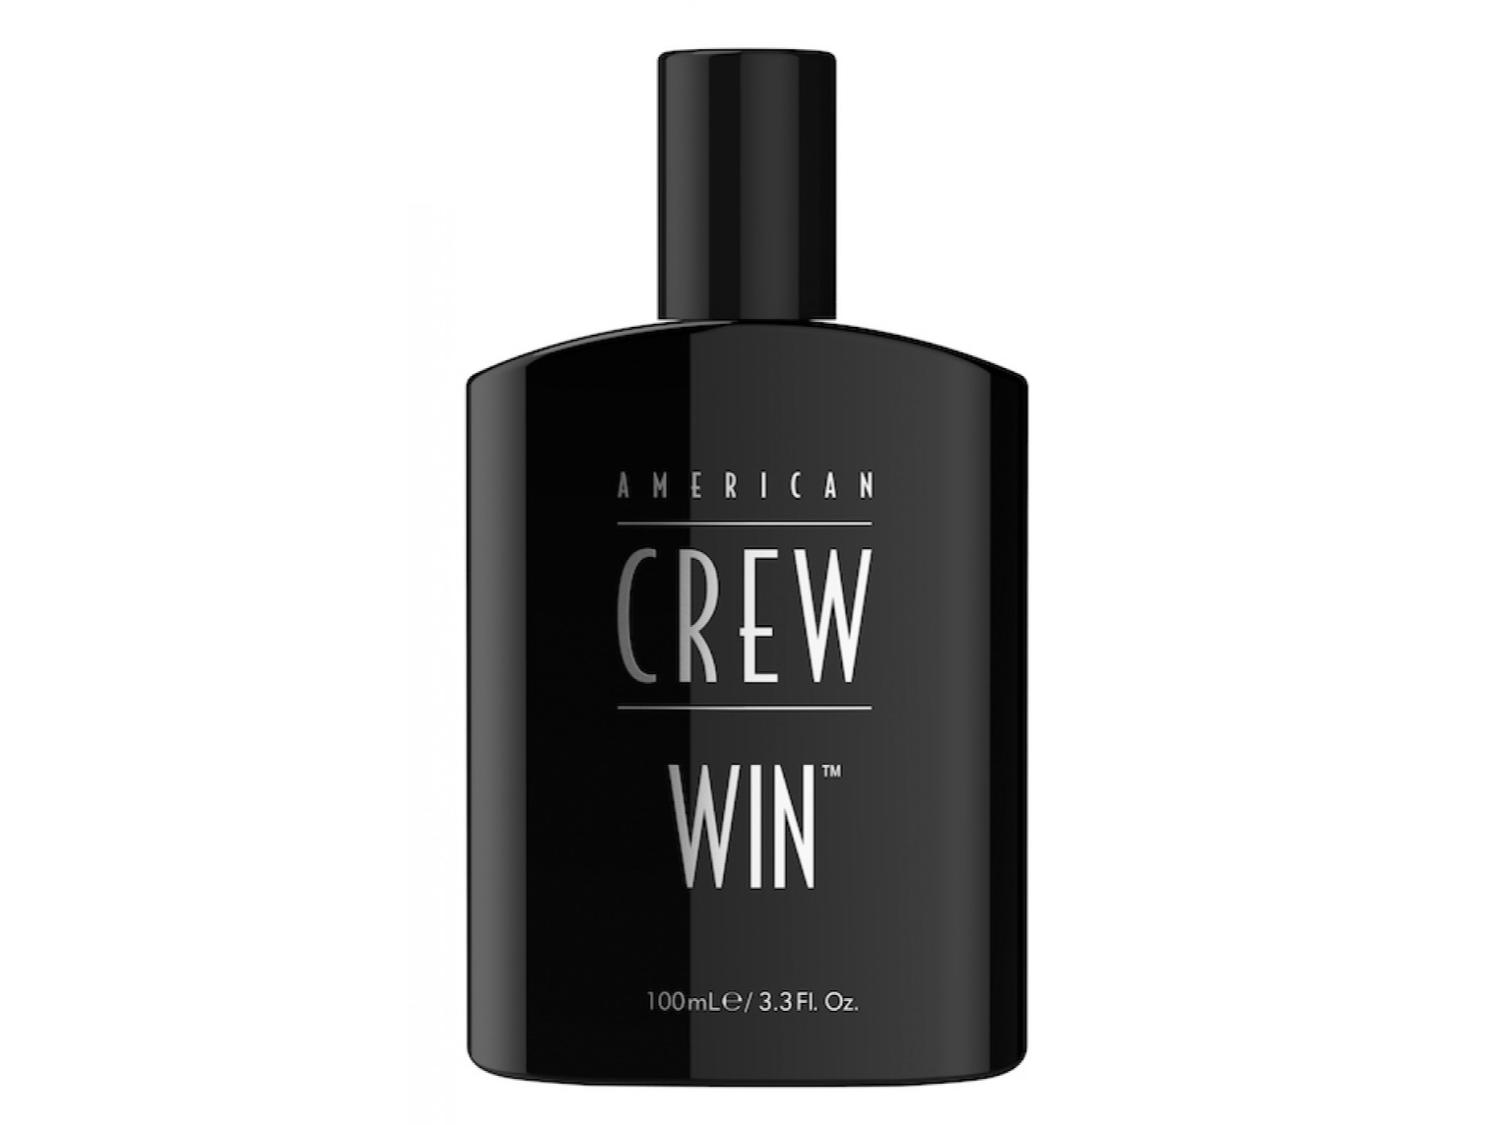 Arma Beauty - American Crew - Win Fragrance